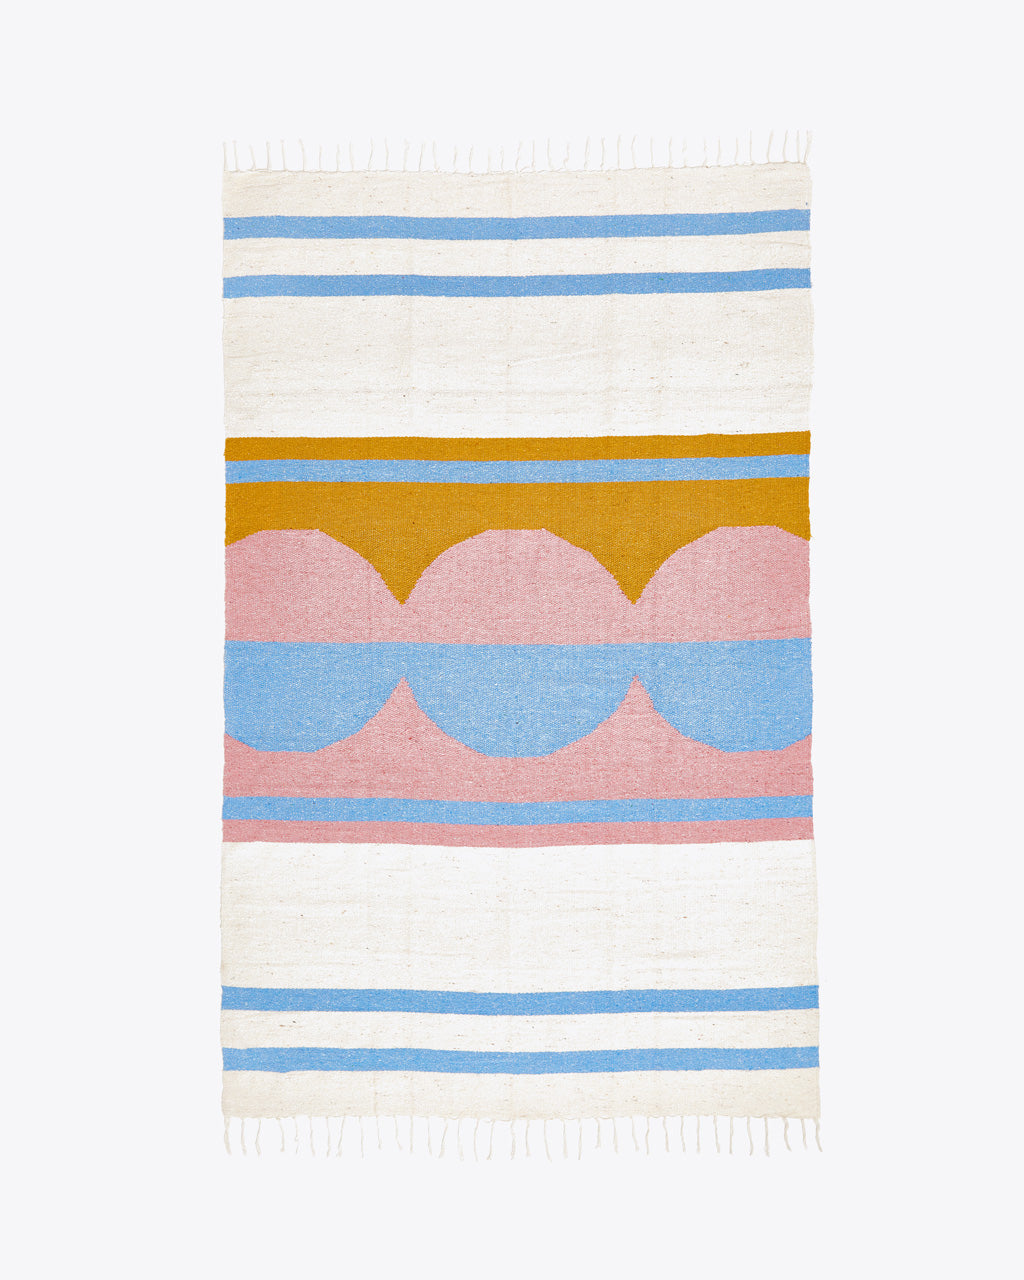 woven blanket with a white, yellow, pink, and blue design